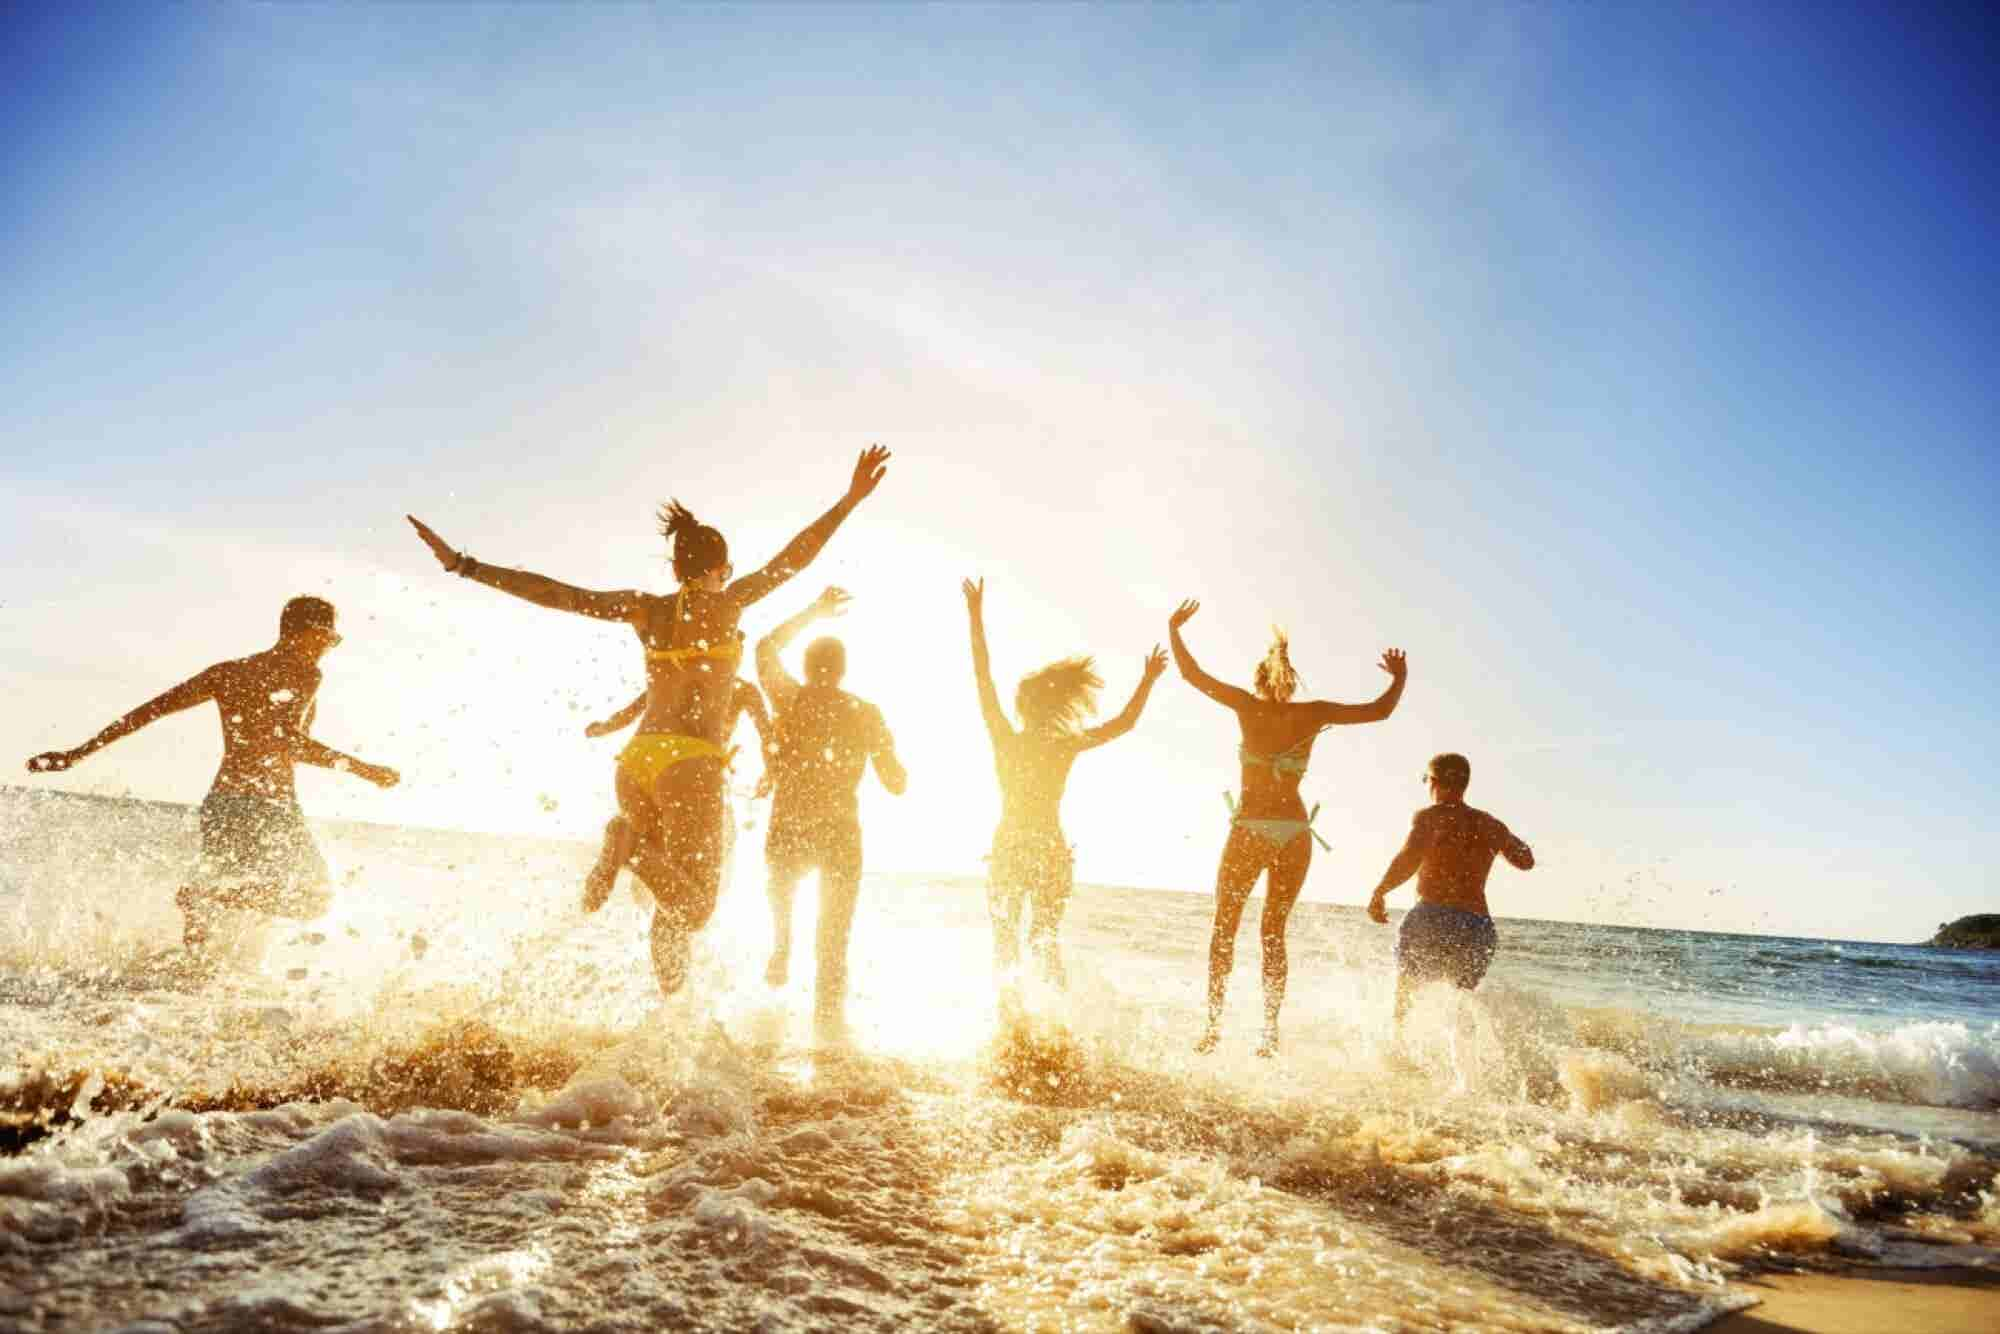 The 'Seasonal' Benefits Your Employees Might Really Want: How About a Trip to the Tropics?